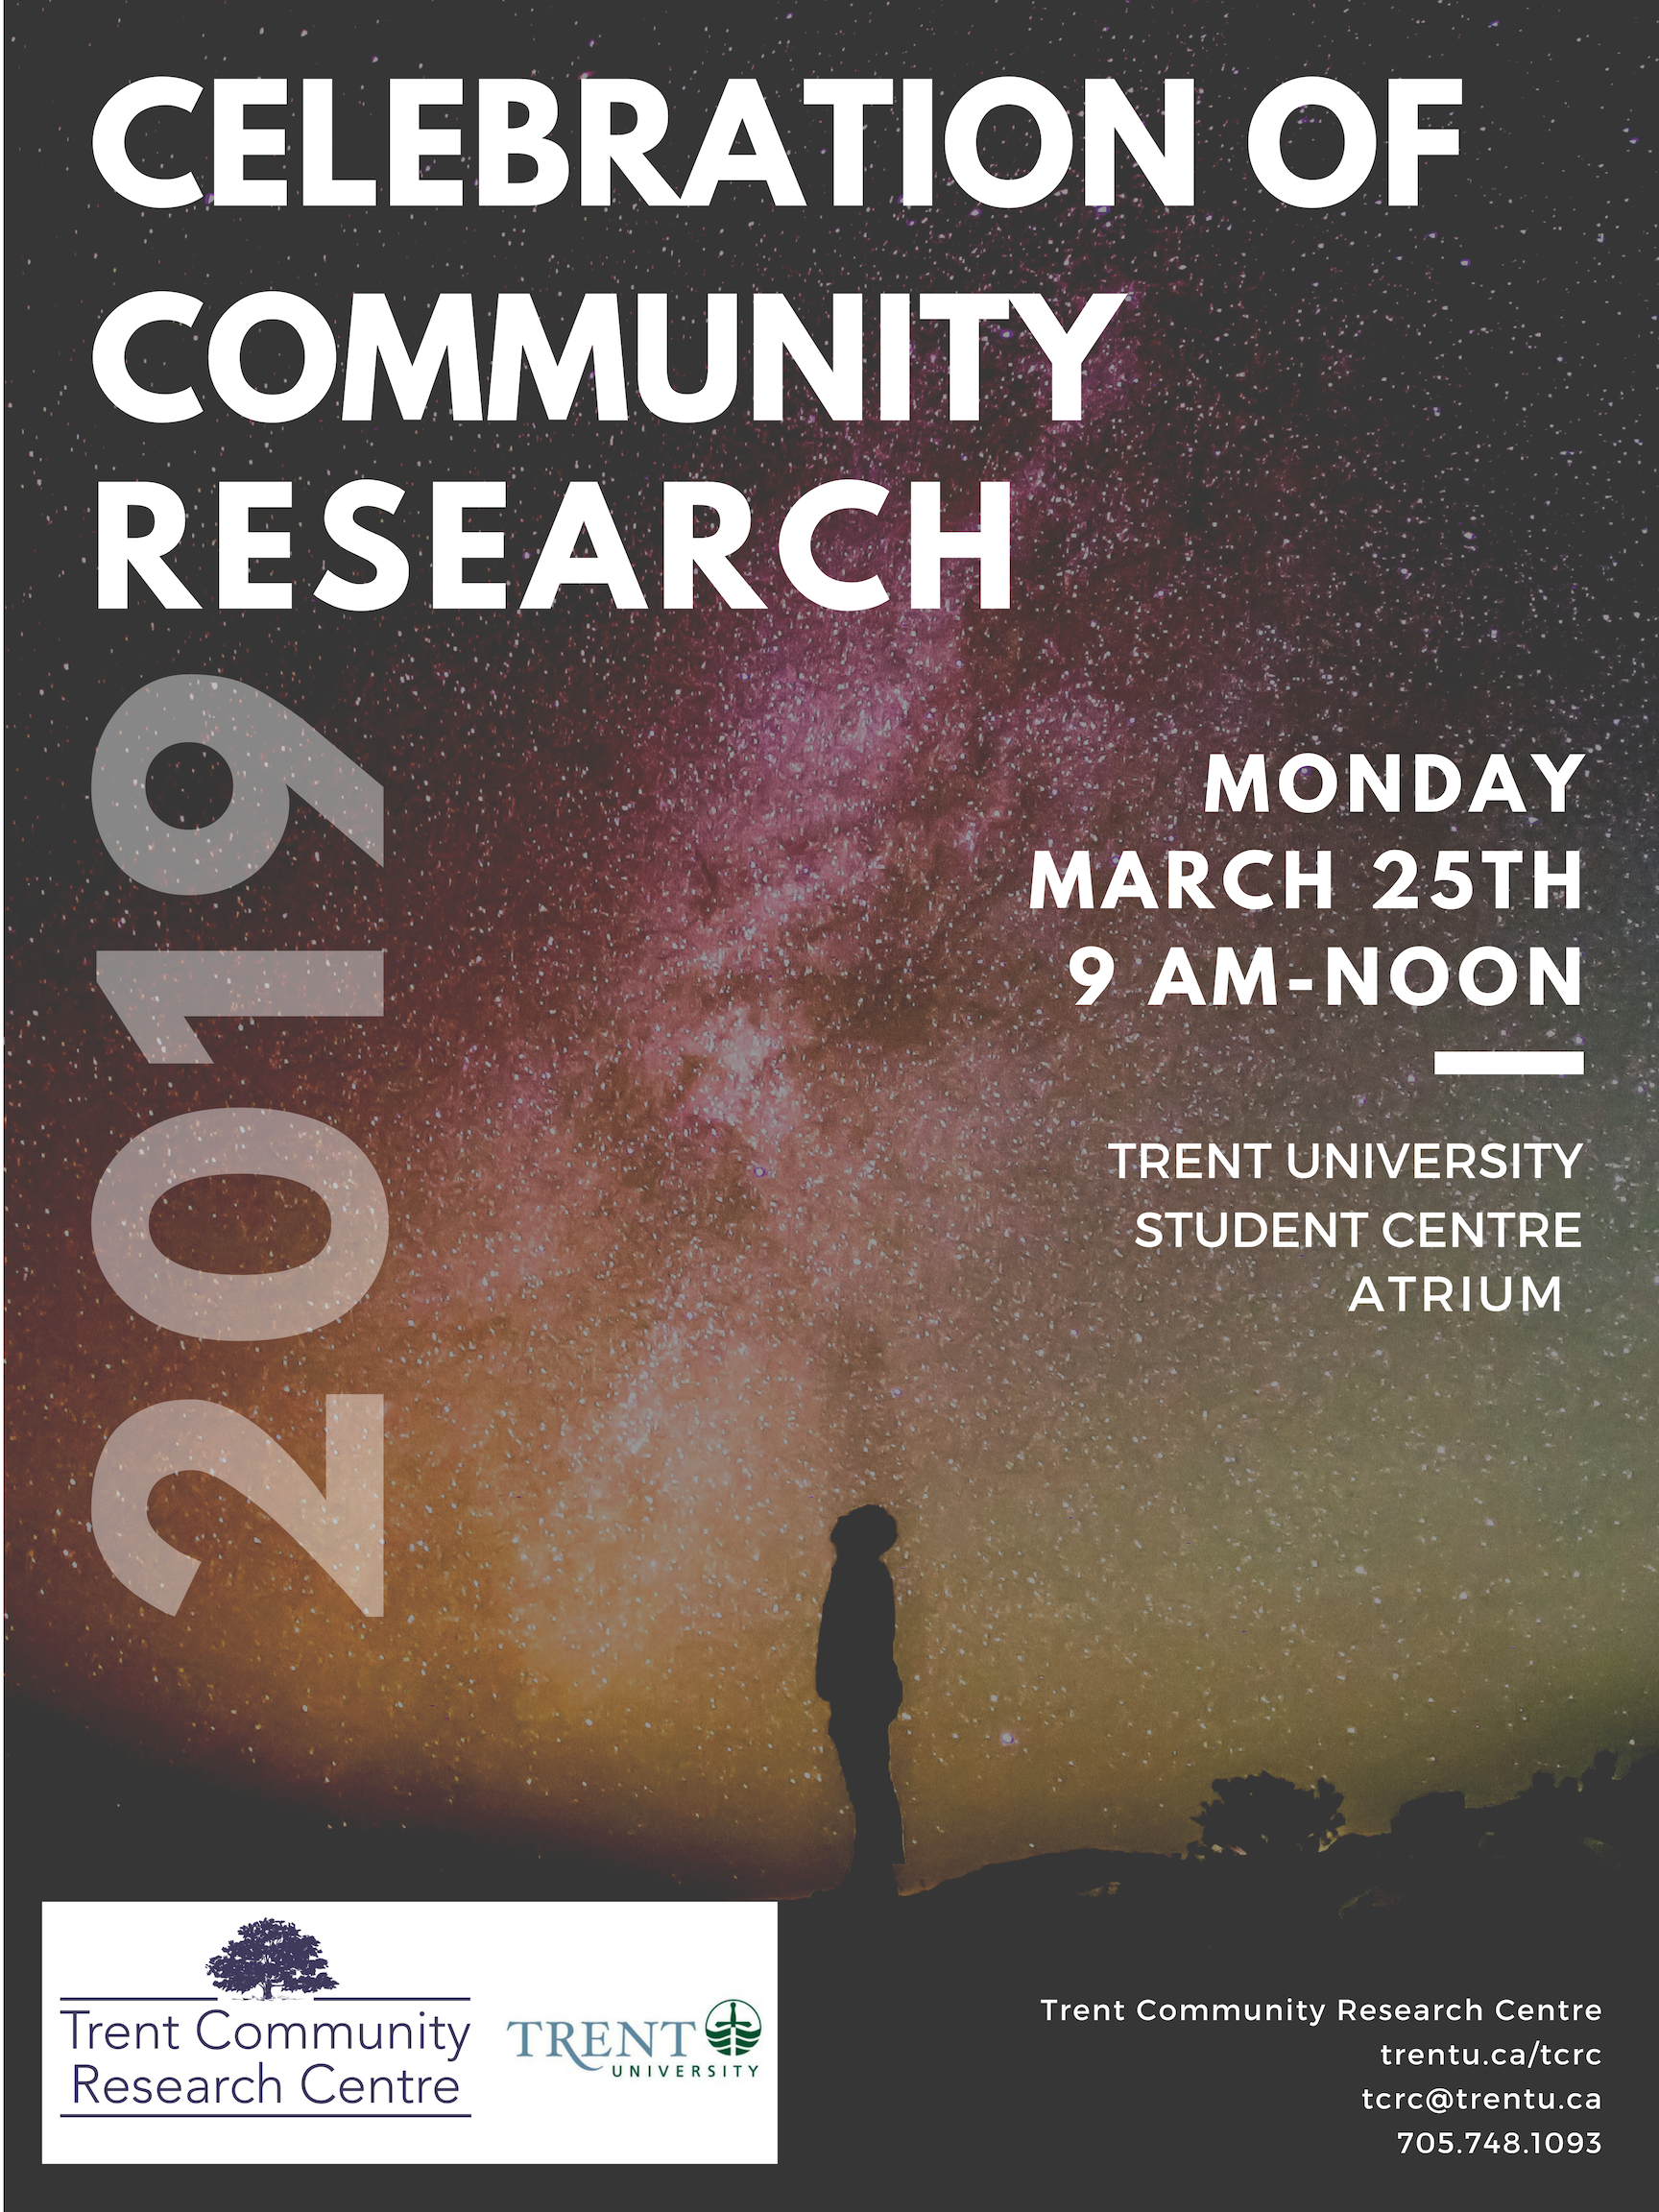 Celebration of Research Poster